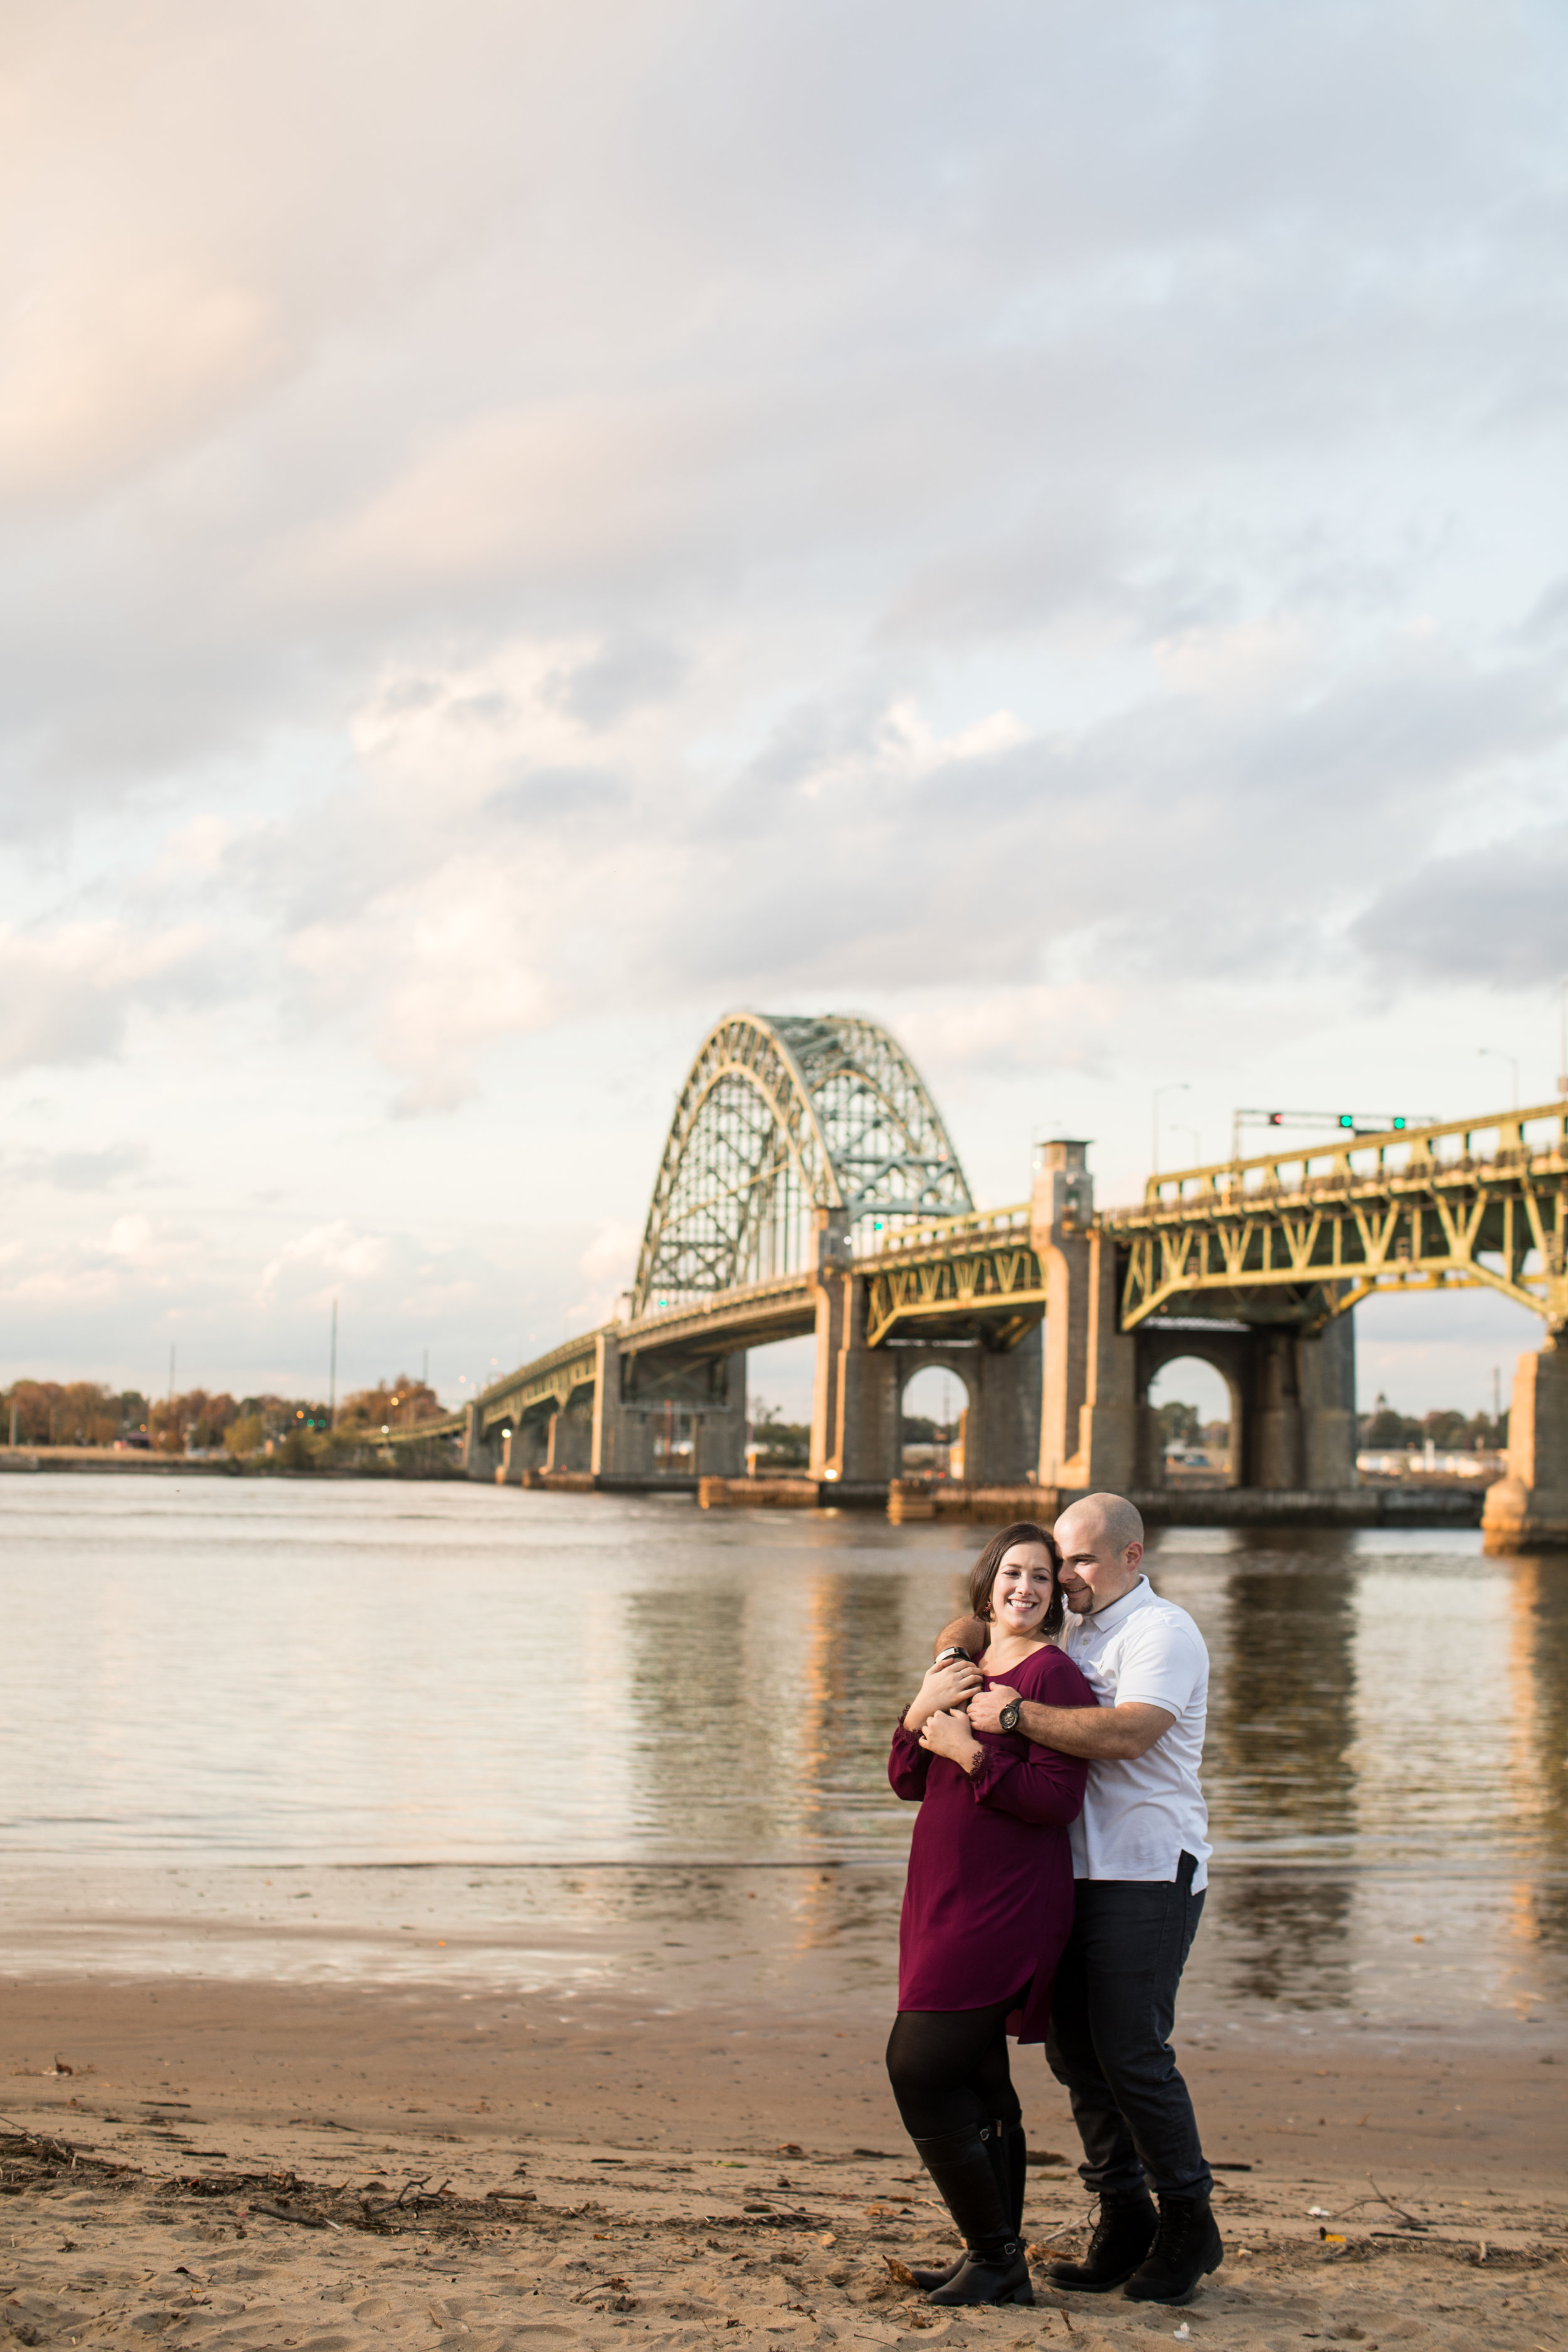 Jamie and Pete snuggle up for an amazing sunset near the Tacony-Palmyra Bridge leading into Philadelphia.